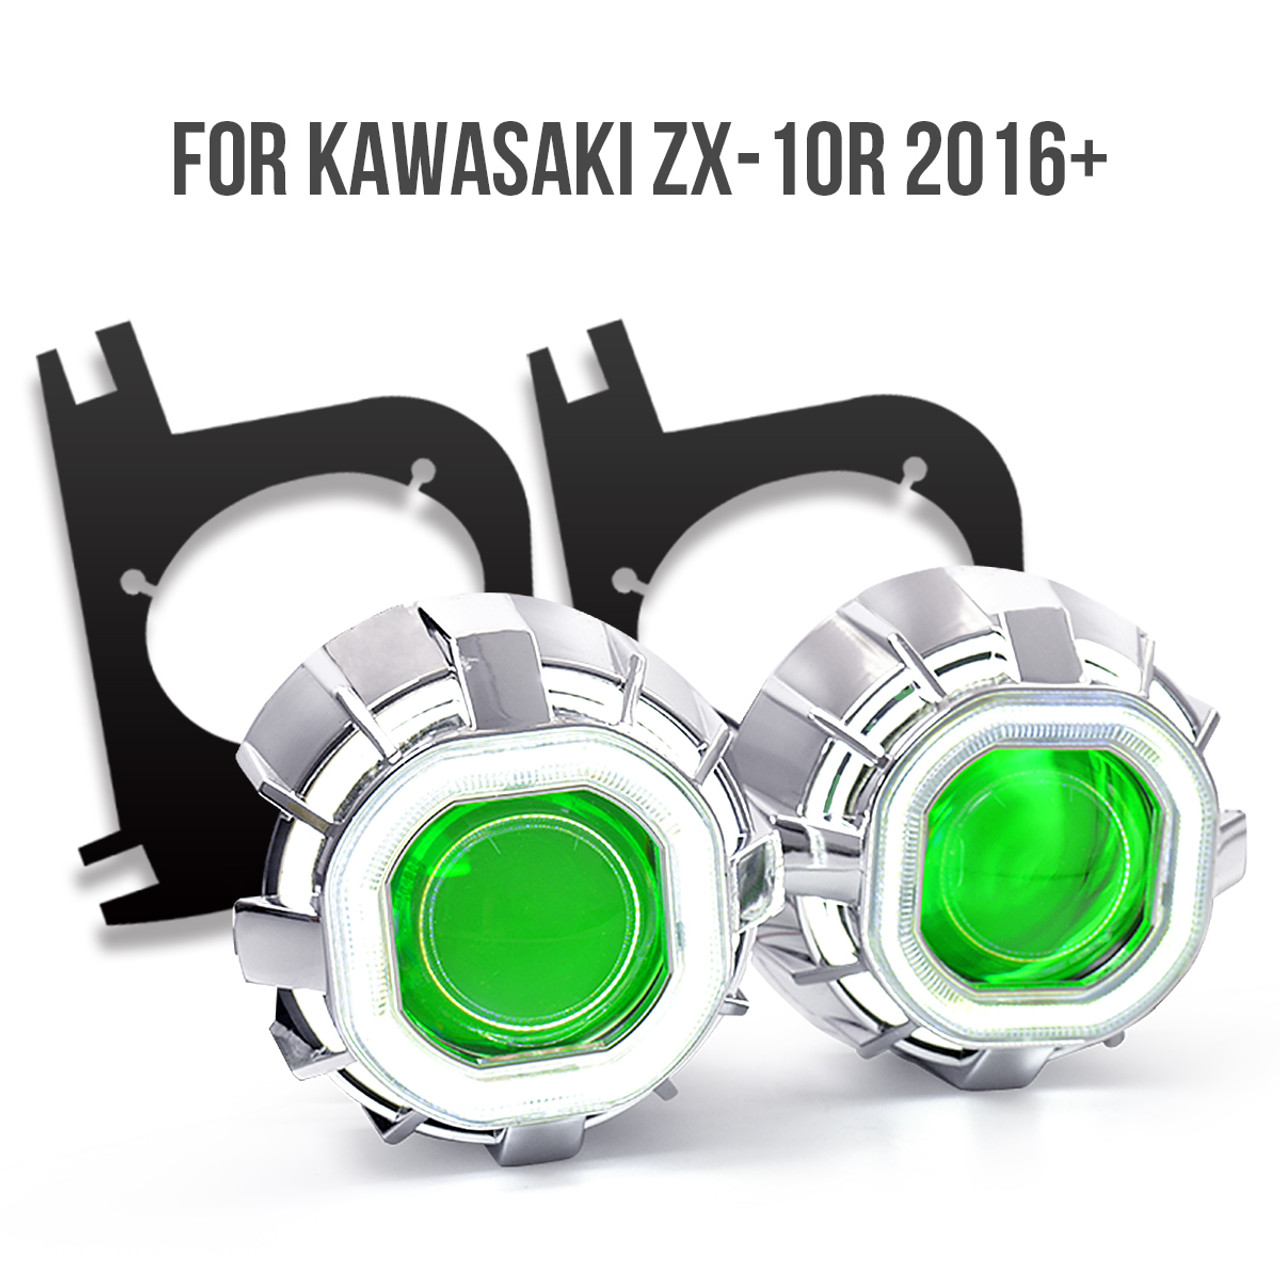 Fit for Kawasaki ZX-10R 2016 2017+ KT Tailor-Made HID Projector Kit HP37  V1-B(Square)